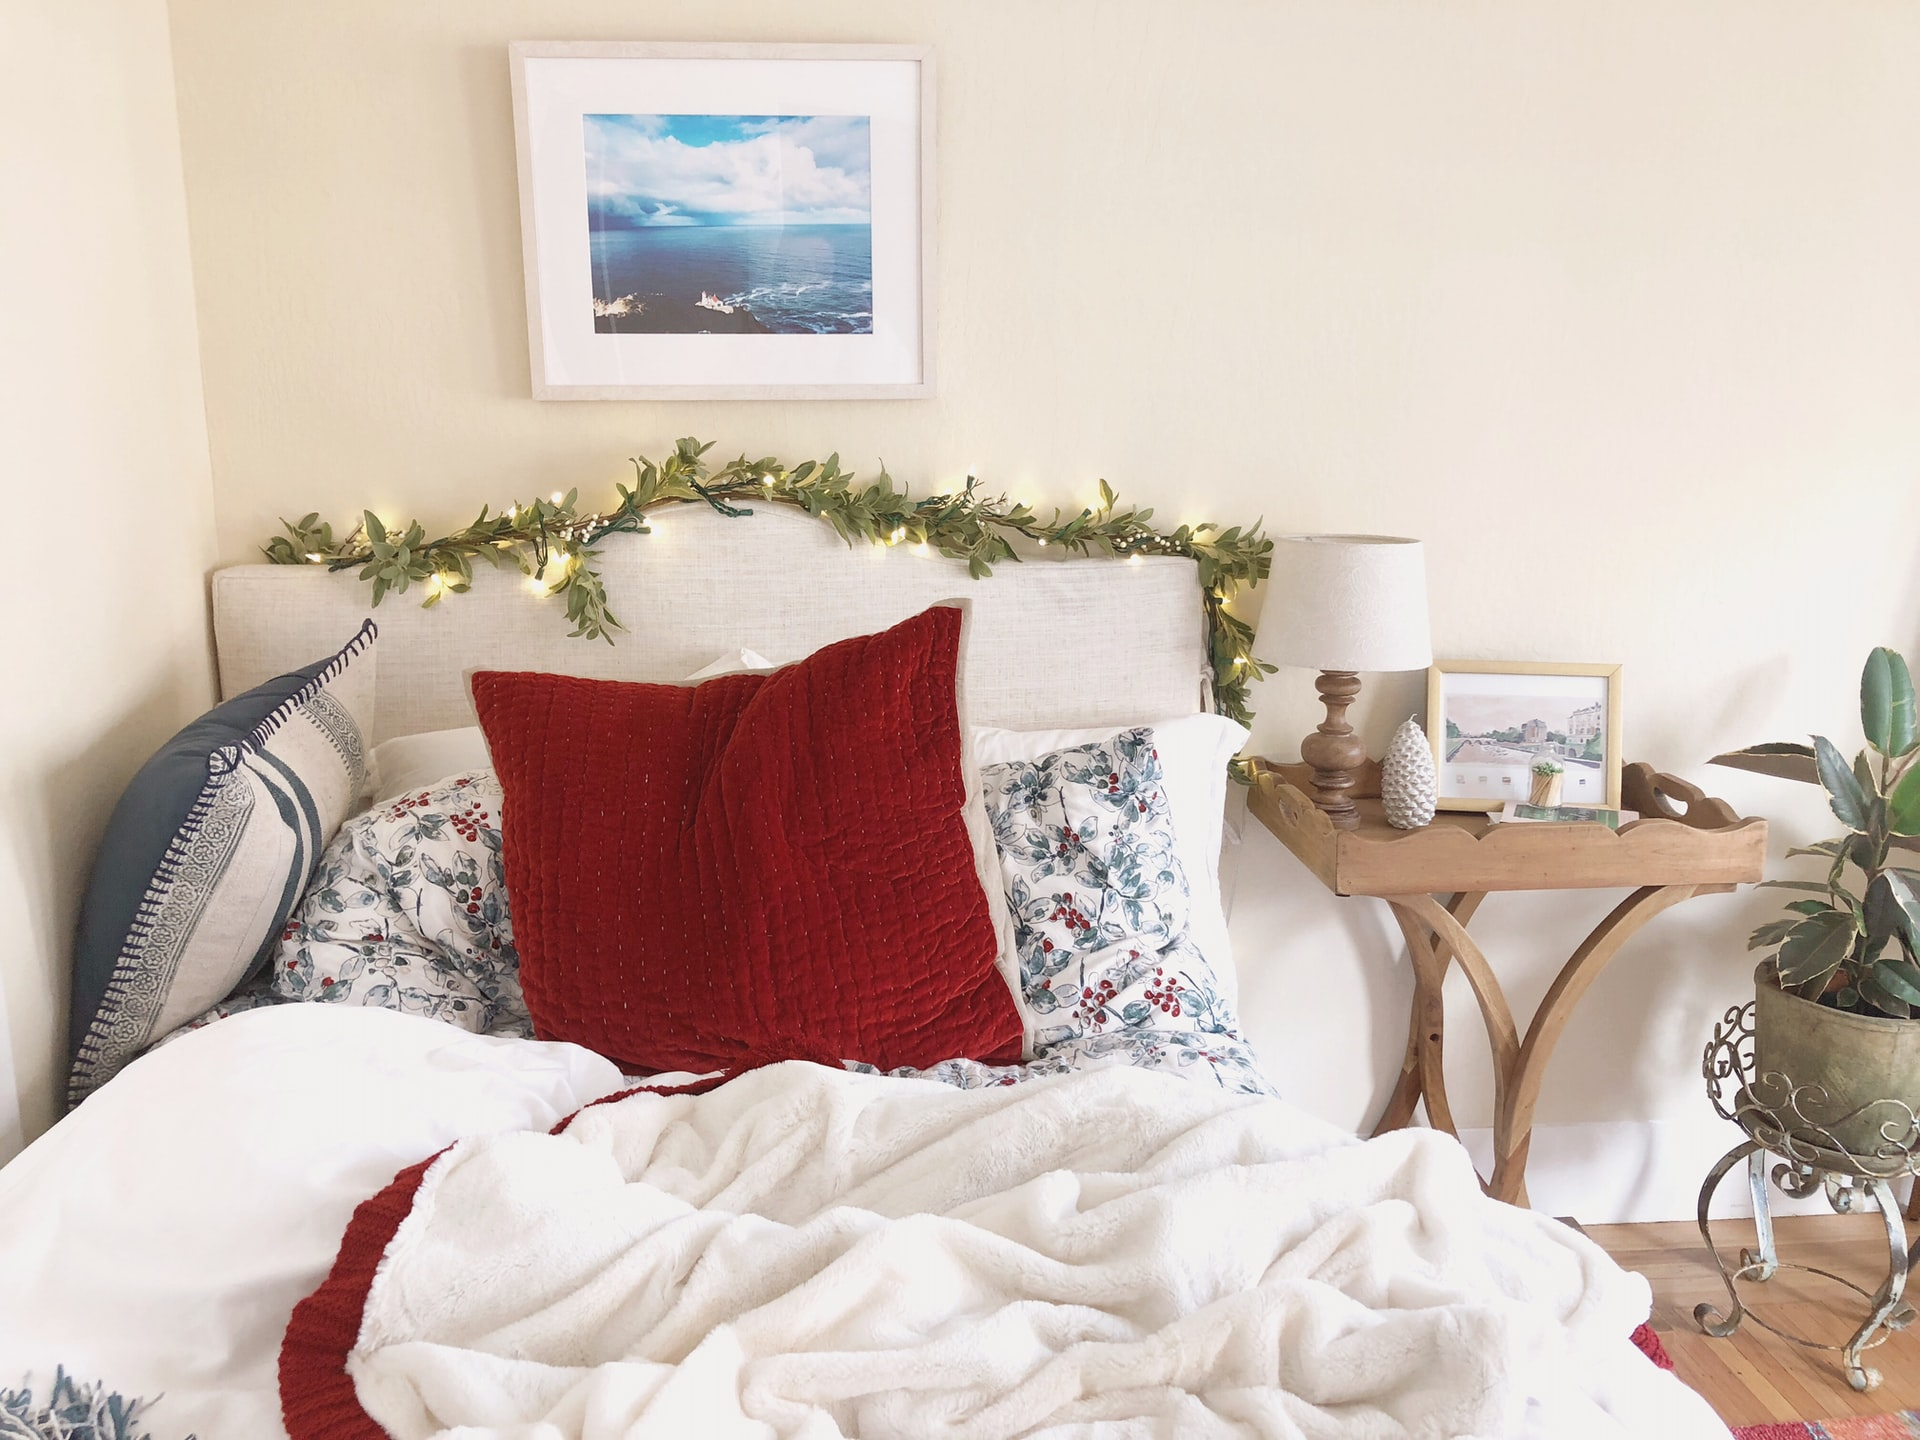 Country Aesthetic 5 Farmhouse Bedroom Decor Ideas You Ll Love Broke And Chicbroke And Chic